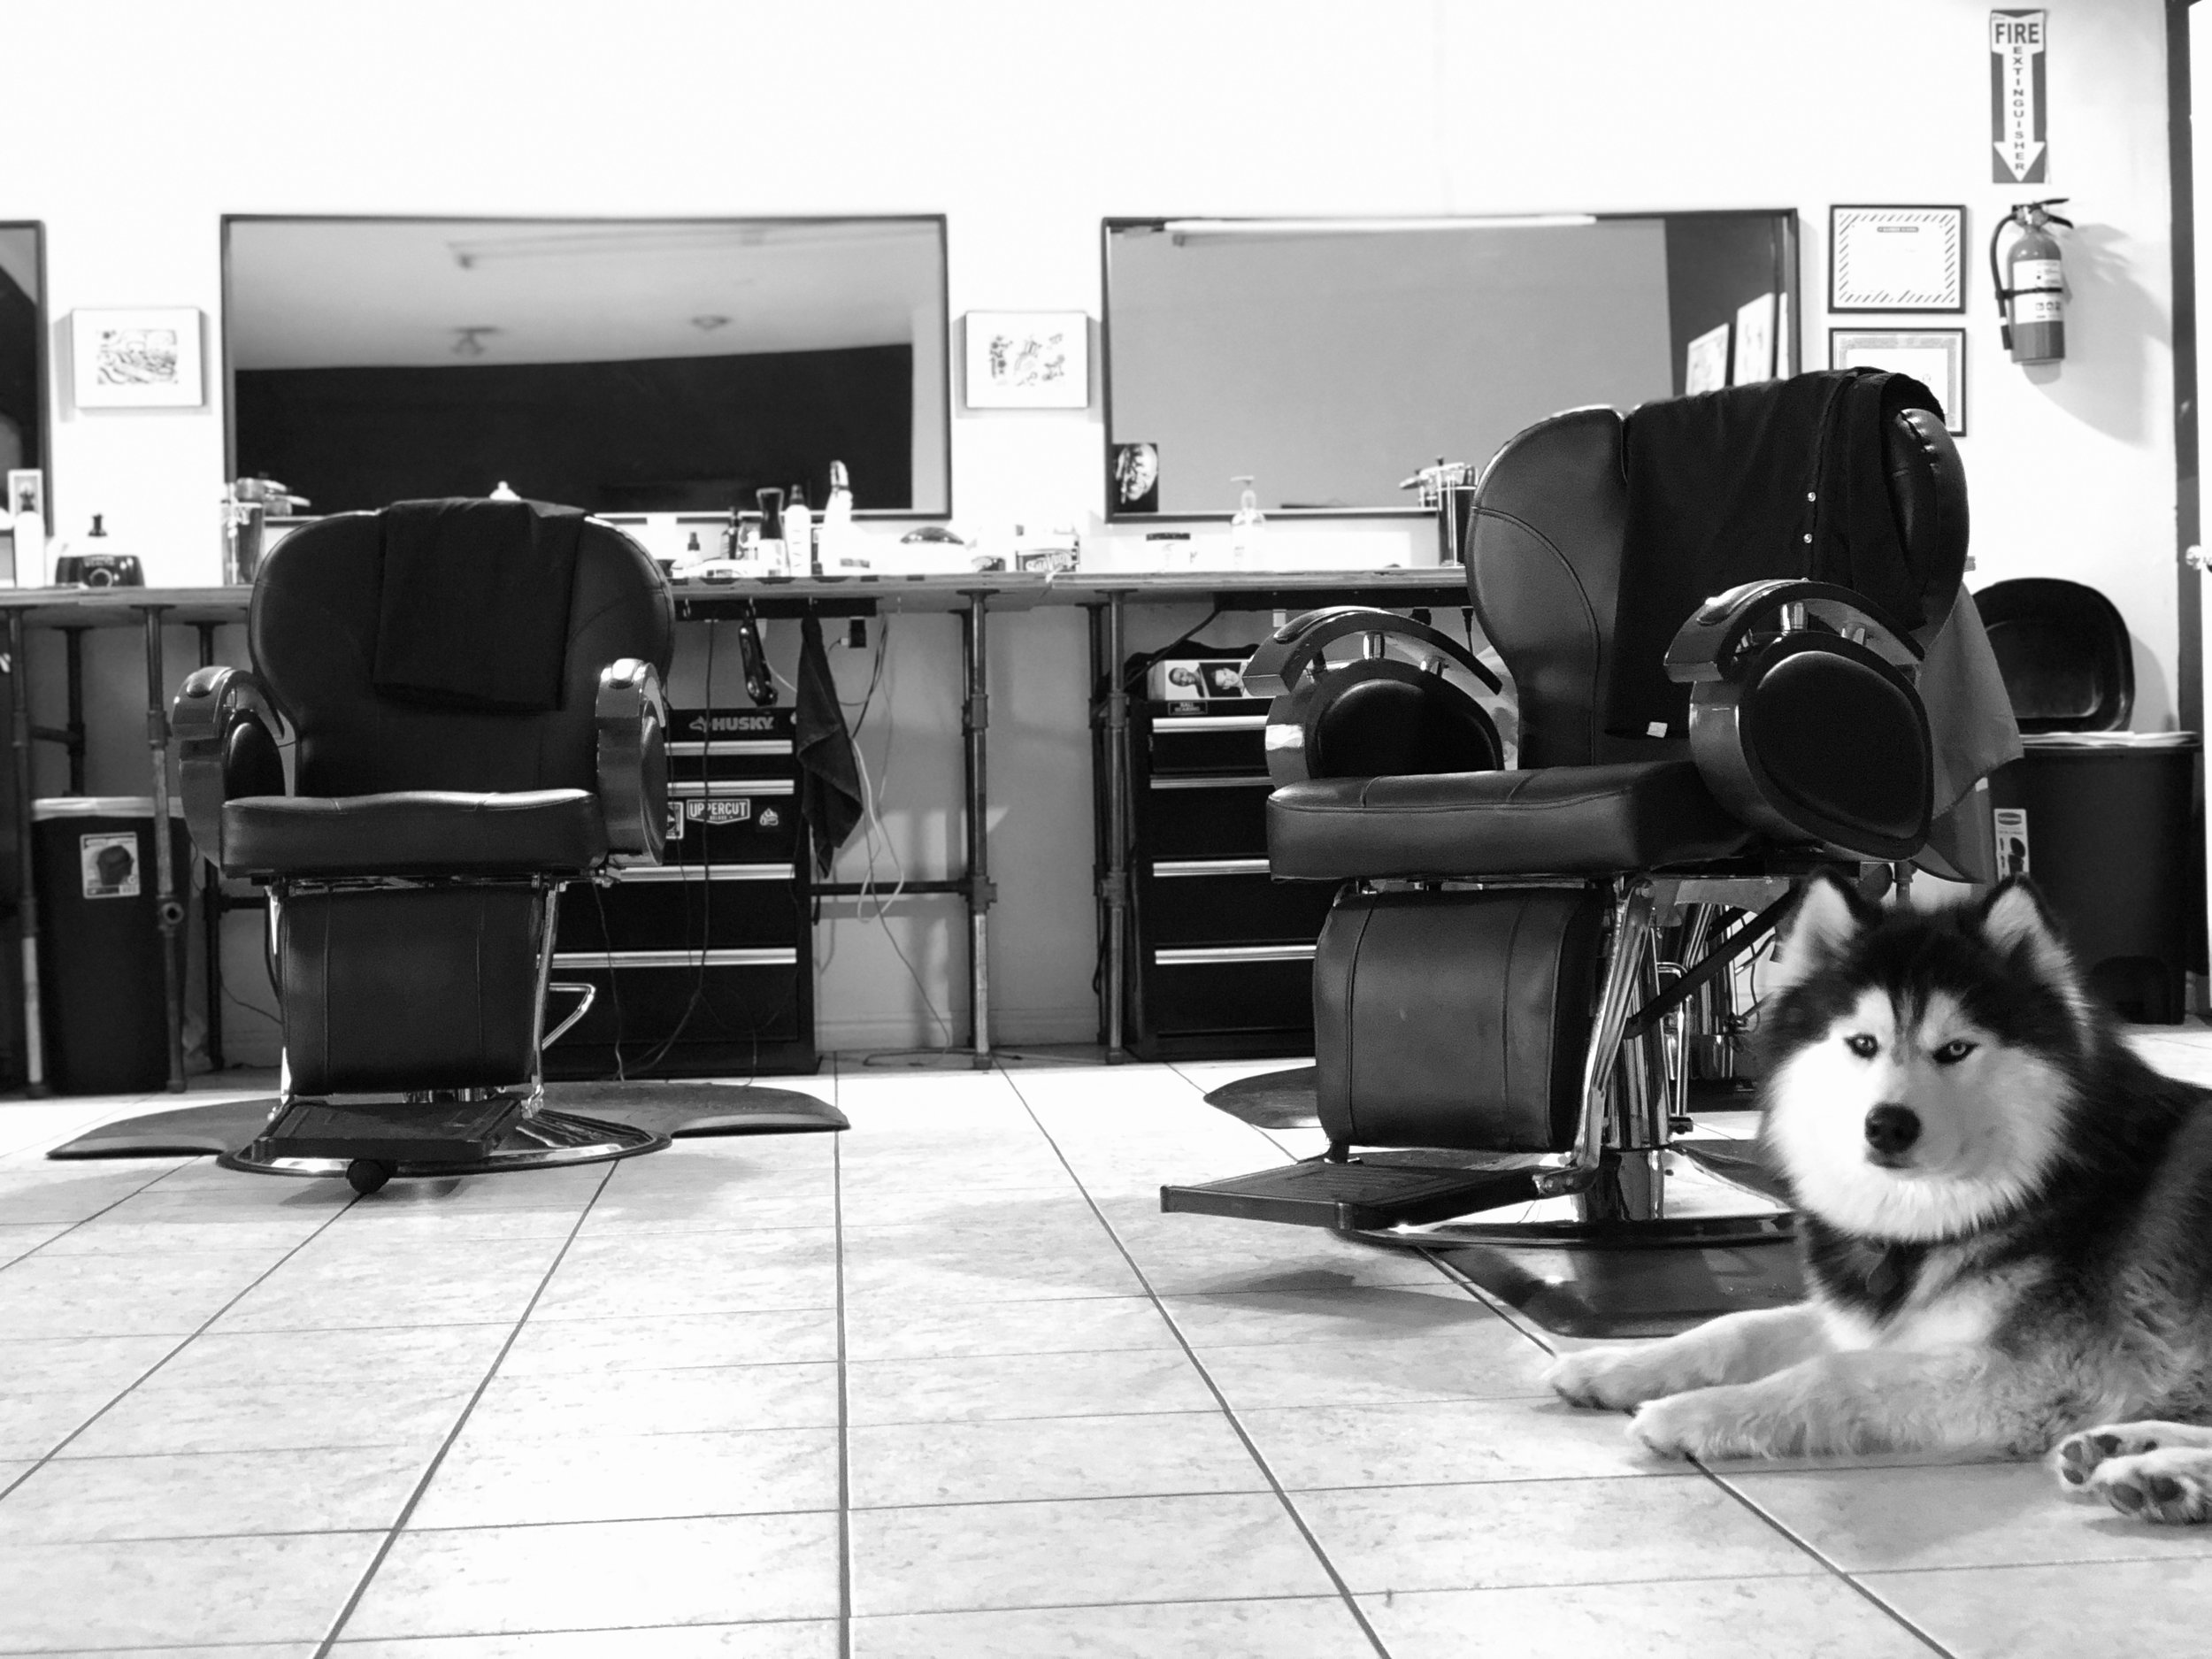 Barber Shop near me. - We are Salt lake city's barber shop with a great passion for what we do. We have no gimmicks, we keep things simple. So if you have been looking for a barber shop near you. And live in the Sandy, Murray and Cottonwood heights area. We are right around the corner from you and will give you an amazing haircut, people will ask where you got it from. Come find out why we are still Salt lake city's highest rated shop, and still remain Utah's hidden secret.We are an appointment only shop. If we have time in-between appointments we will take care of you. WE apologize but we are NO longer taking walk-ins.